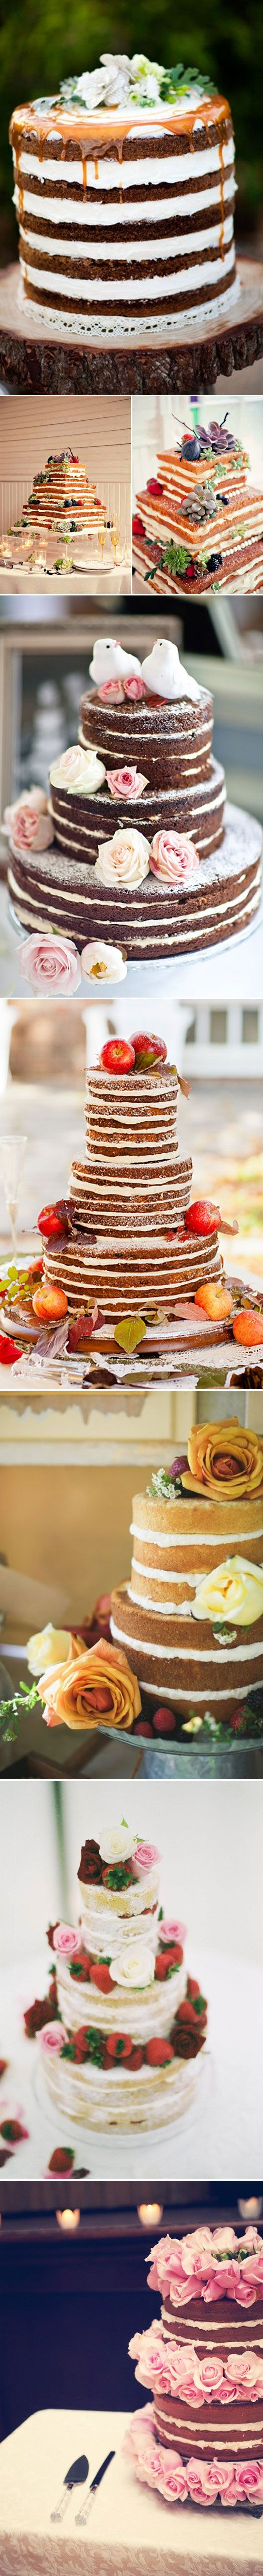 Naked Cakes. A new trending theme.